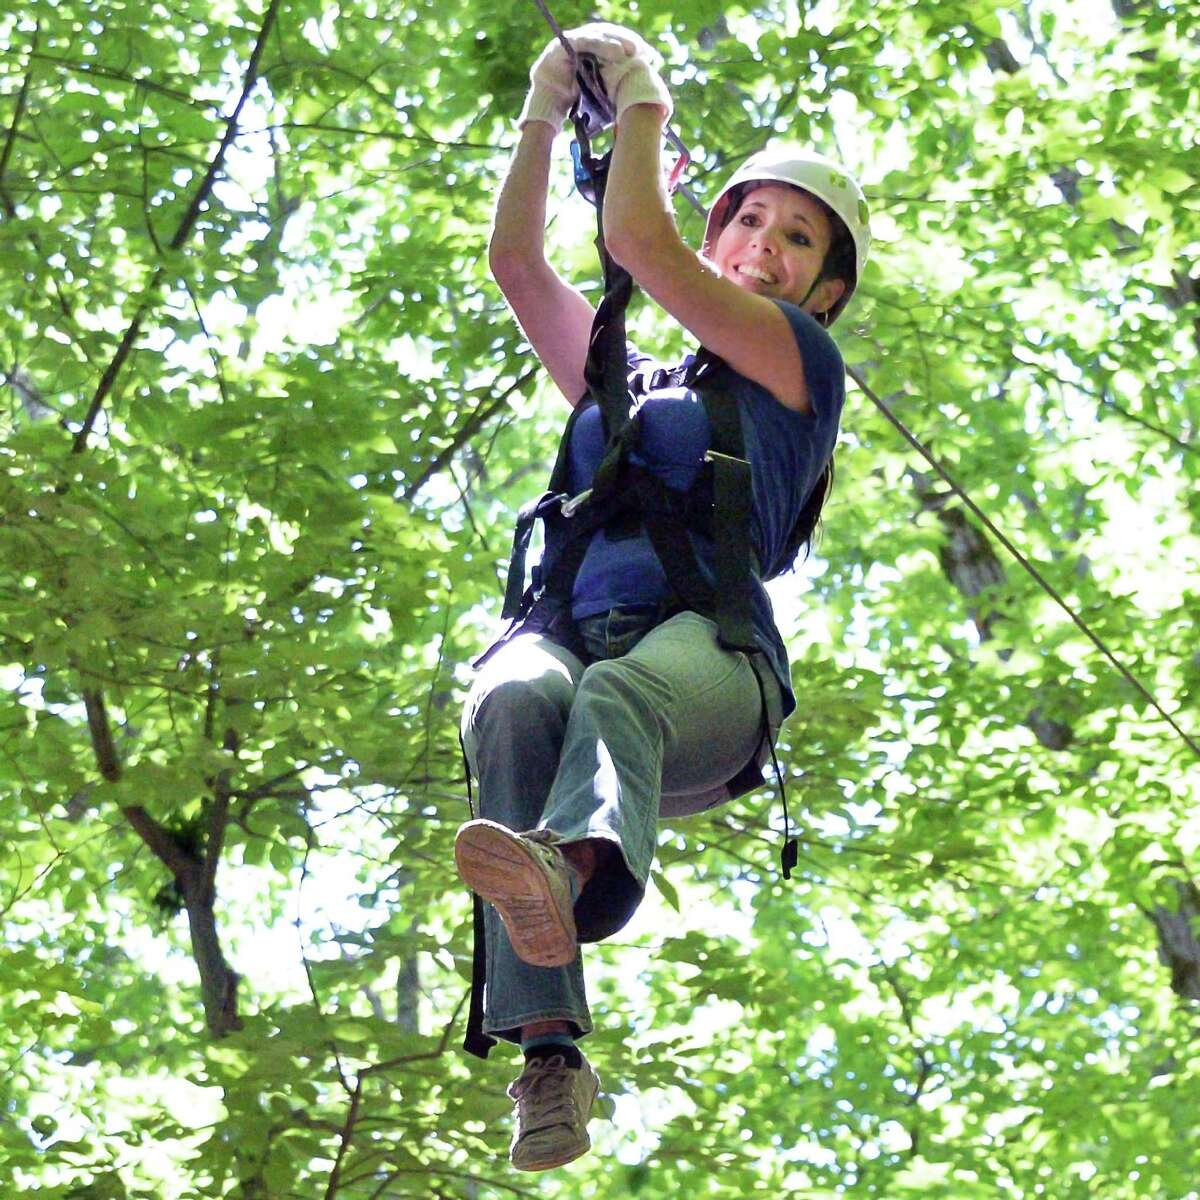 Are you a fan of heights and frights? Mountain Ridge Adventure in Schenectady offers a Zombie Zip Line for ages 14 and up every Friday and Saturday night. Learn more.